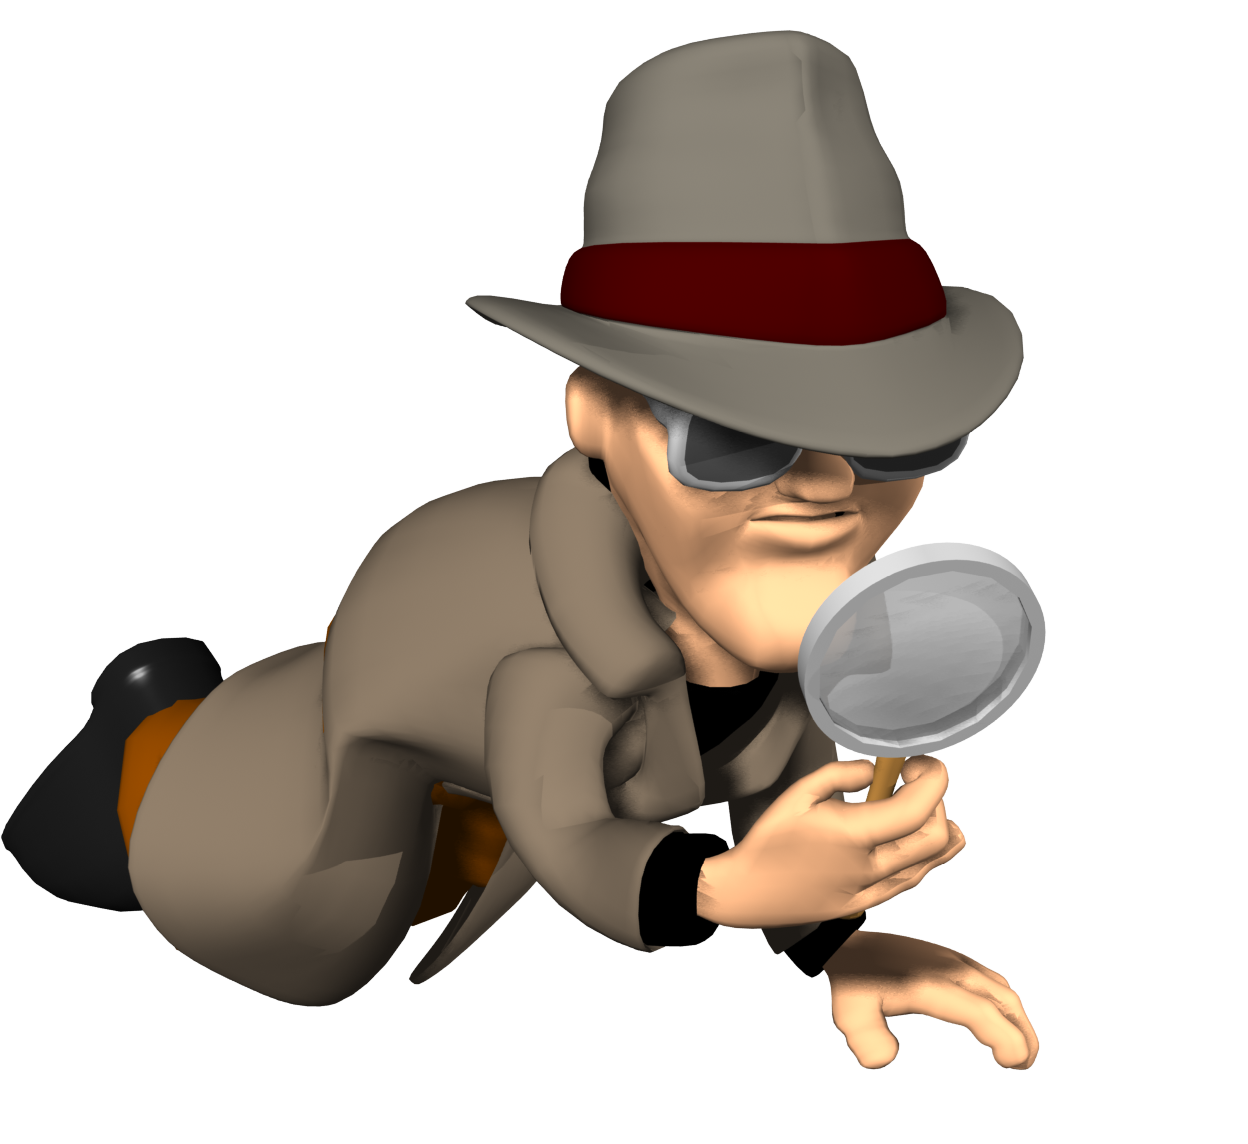 Detective clipart observant.  collection of private